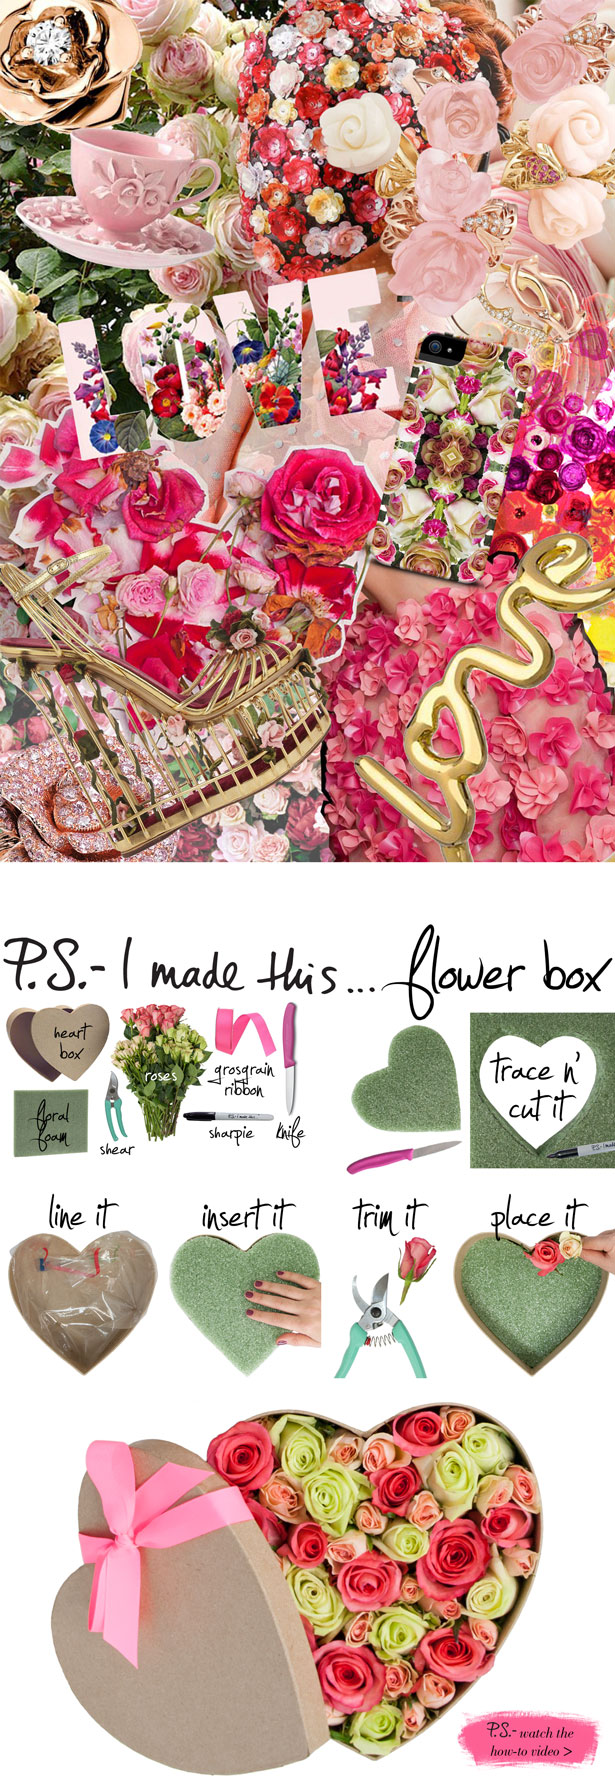 02.11.14_Flower-Box-MERGED